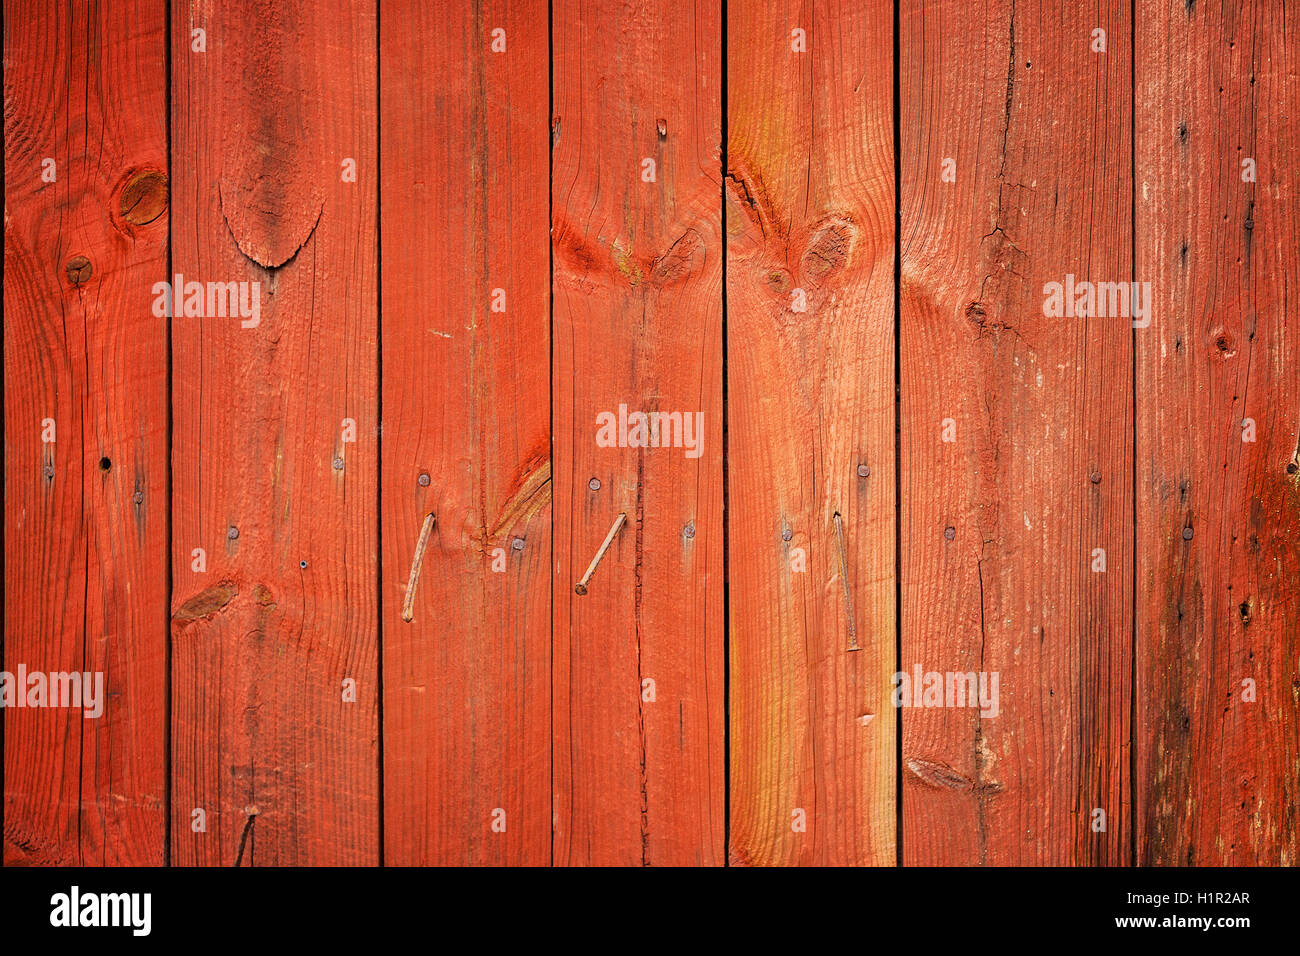 Red wood planks background. - Stock Image